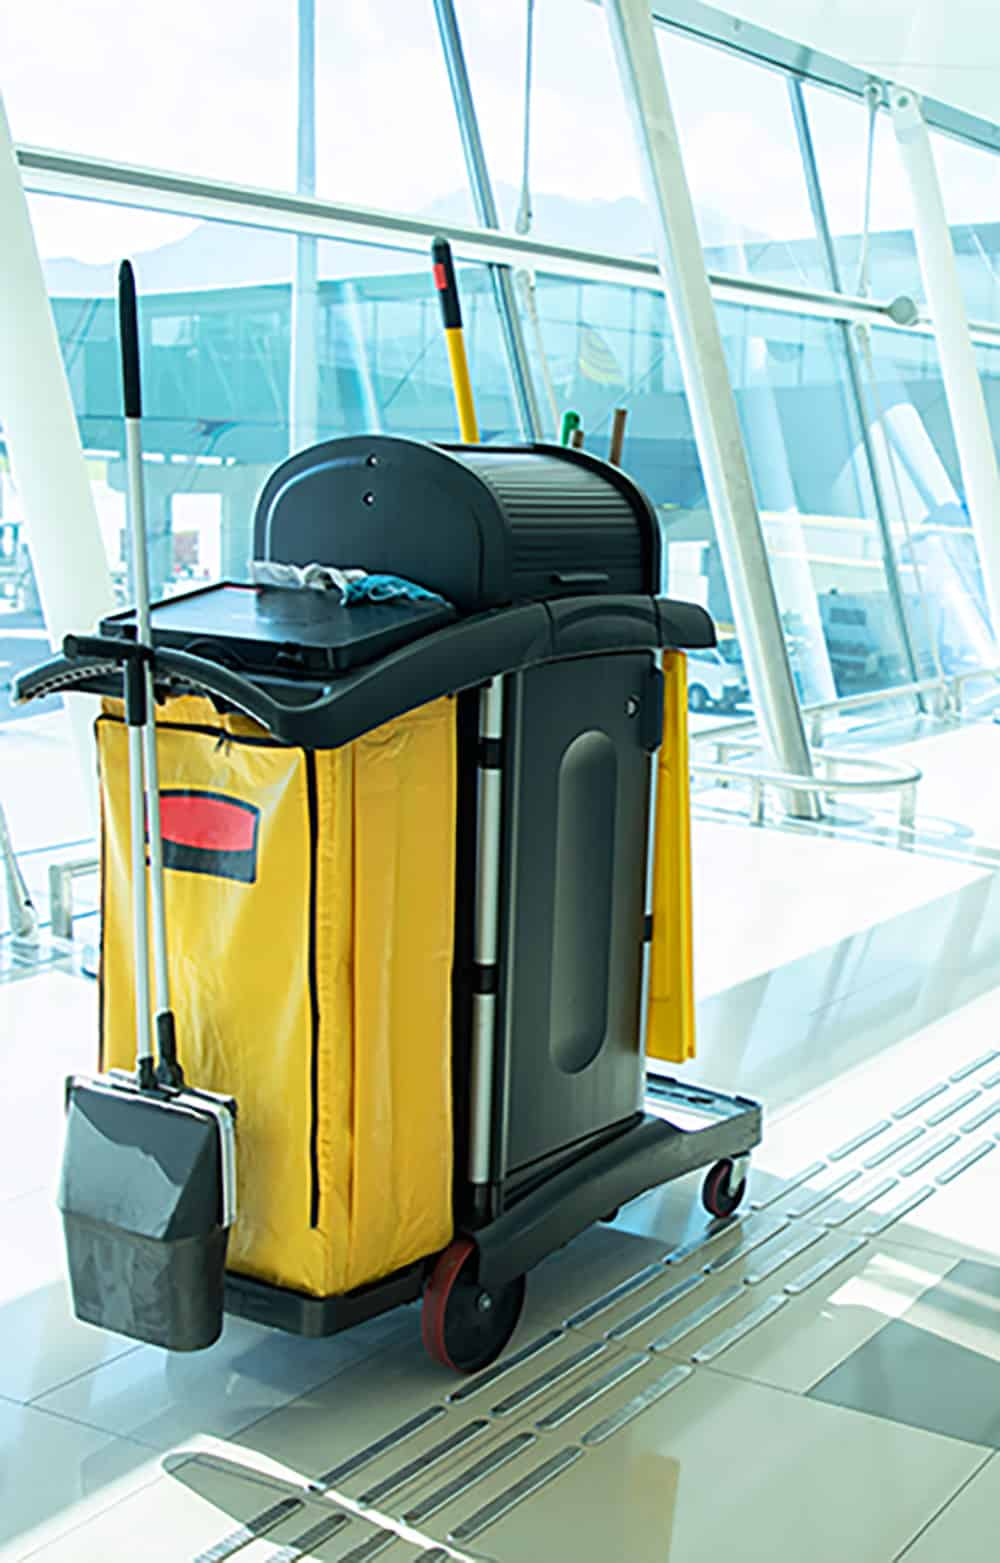 yellow cleaning cart by window